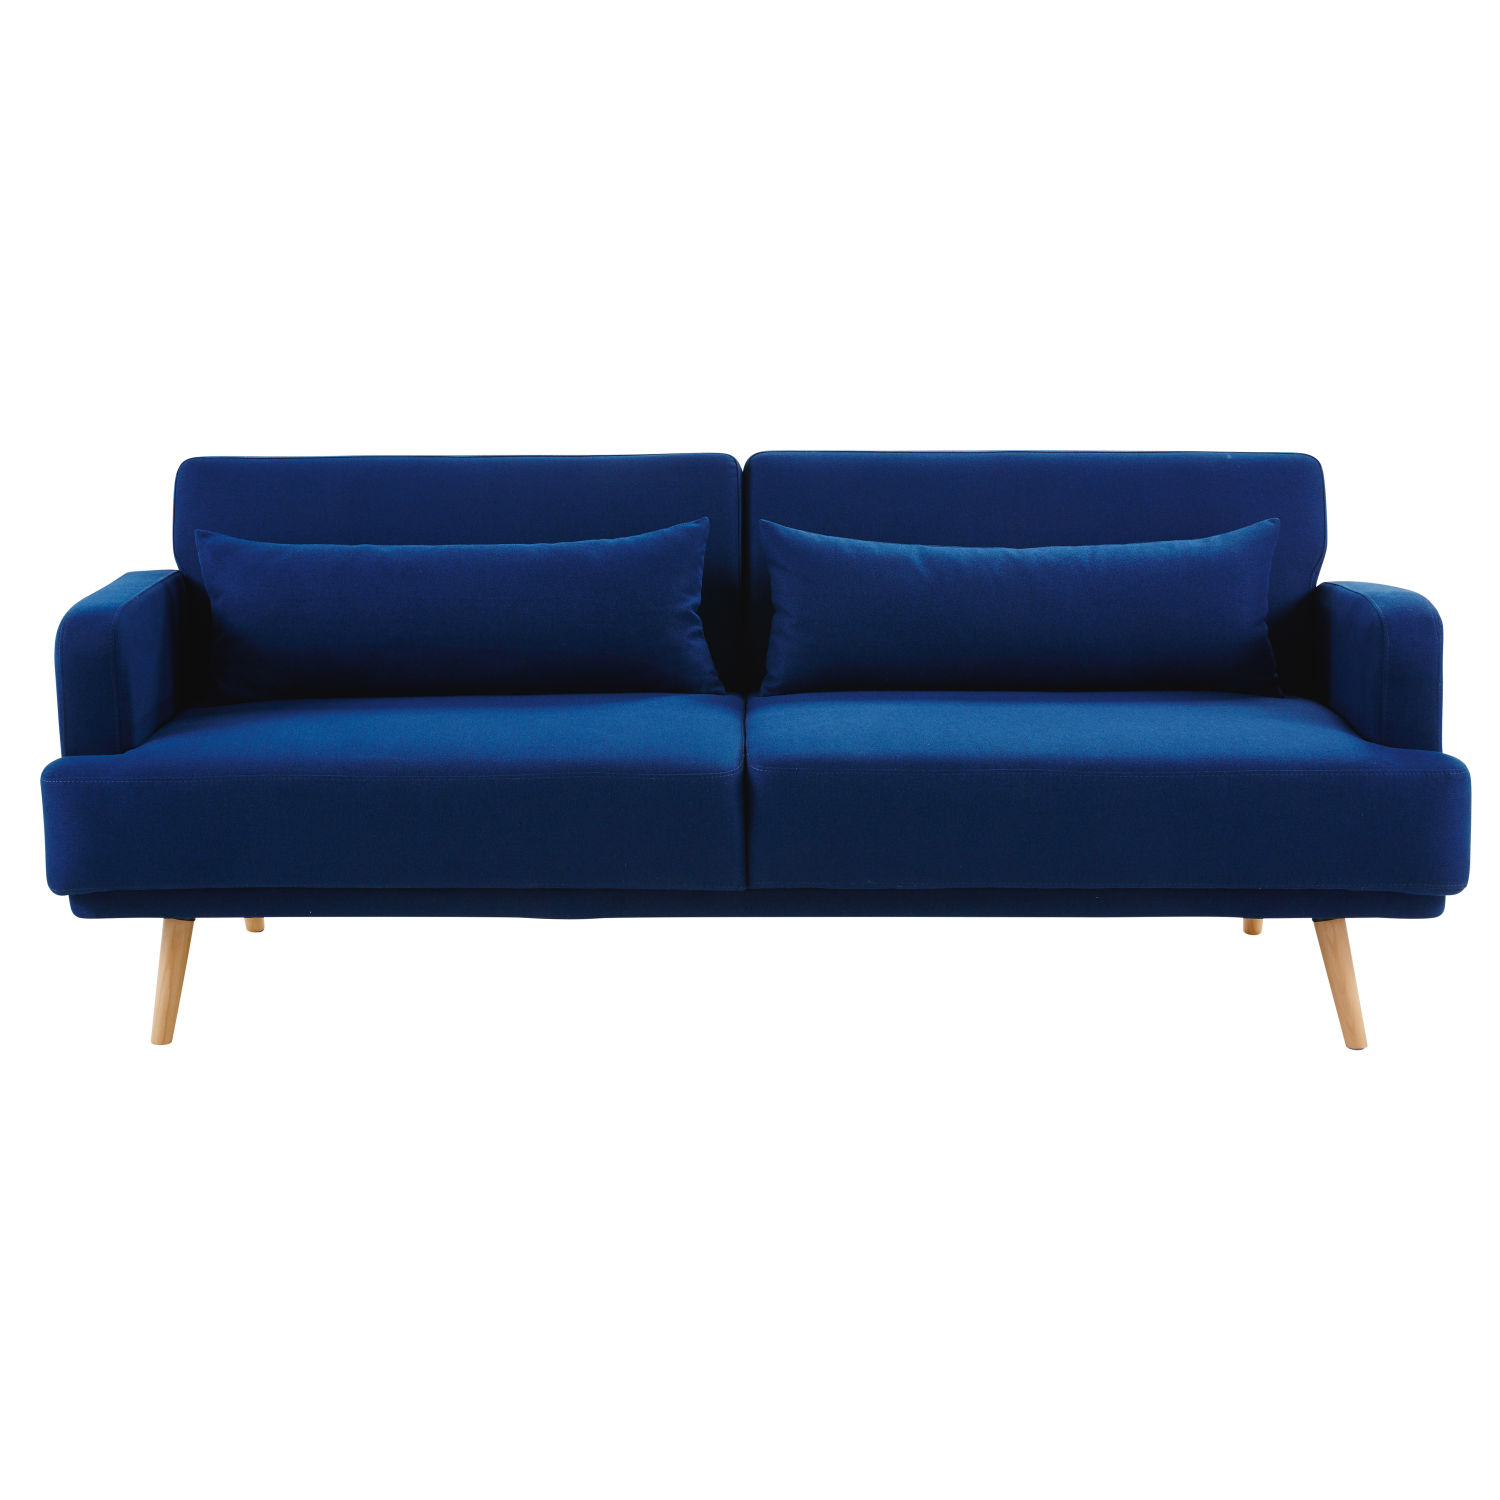 Maison Du Monde Schlafsofa Royal Blue 3 Seater Sofa Bed Maisons Du Monde